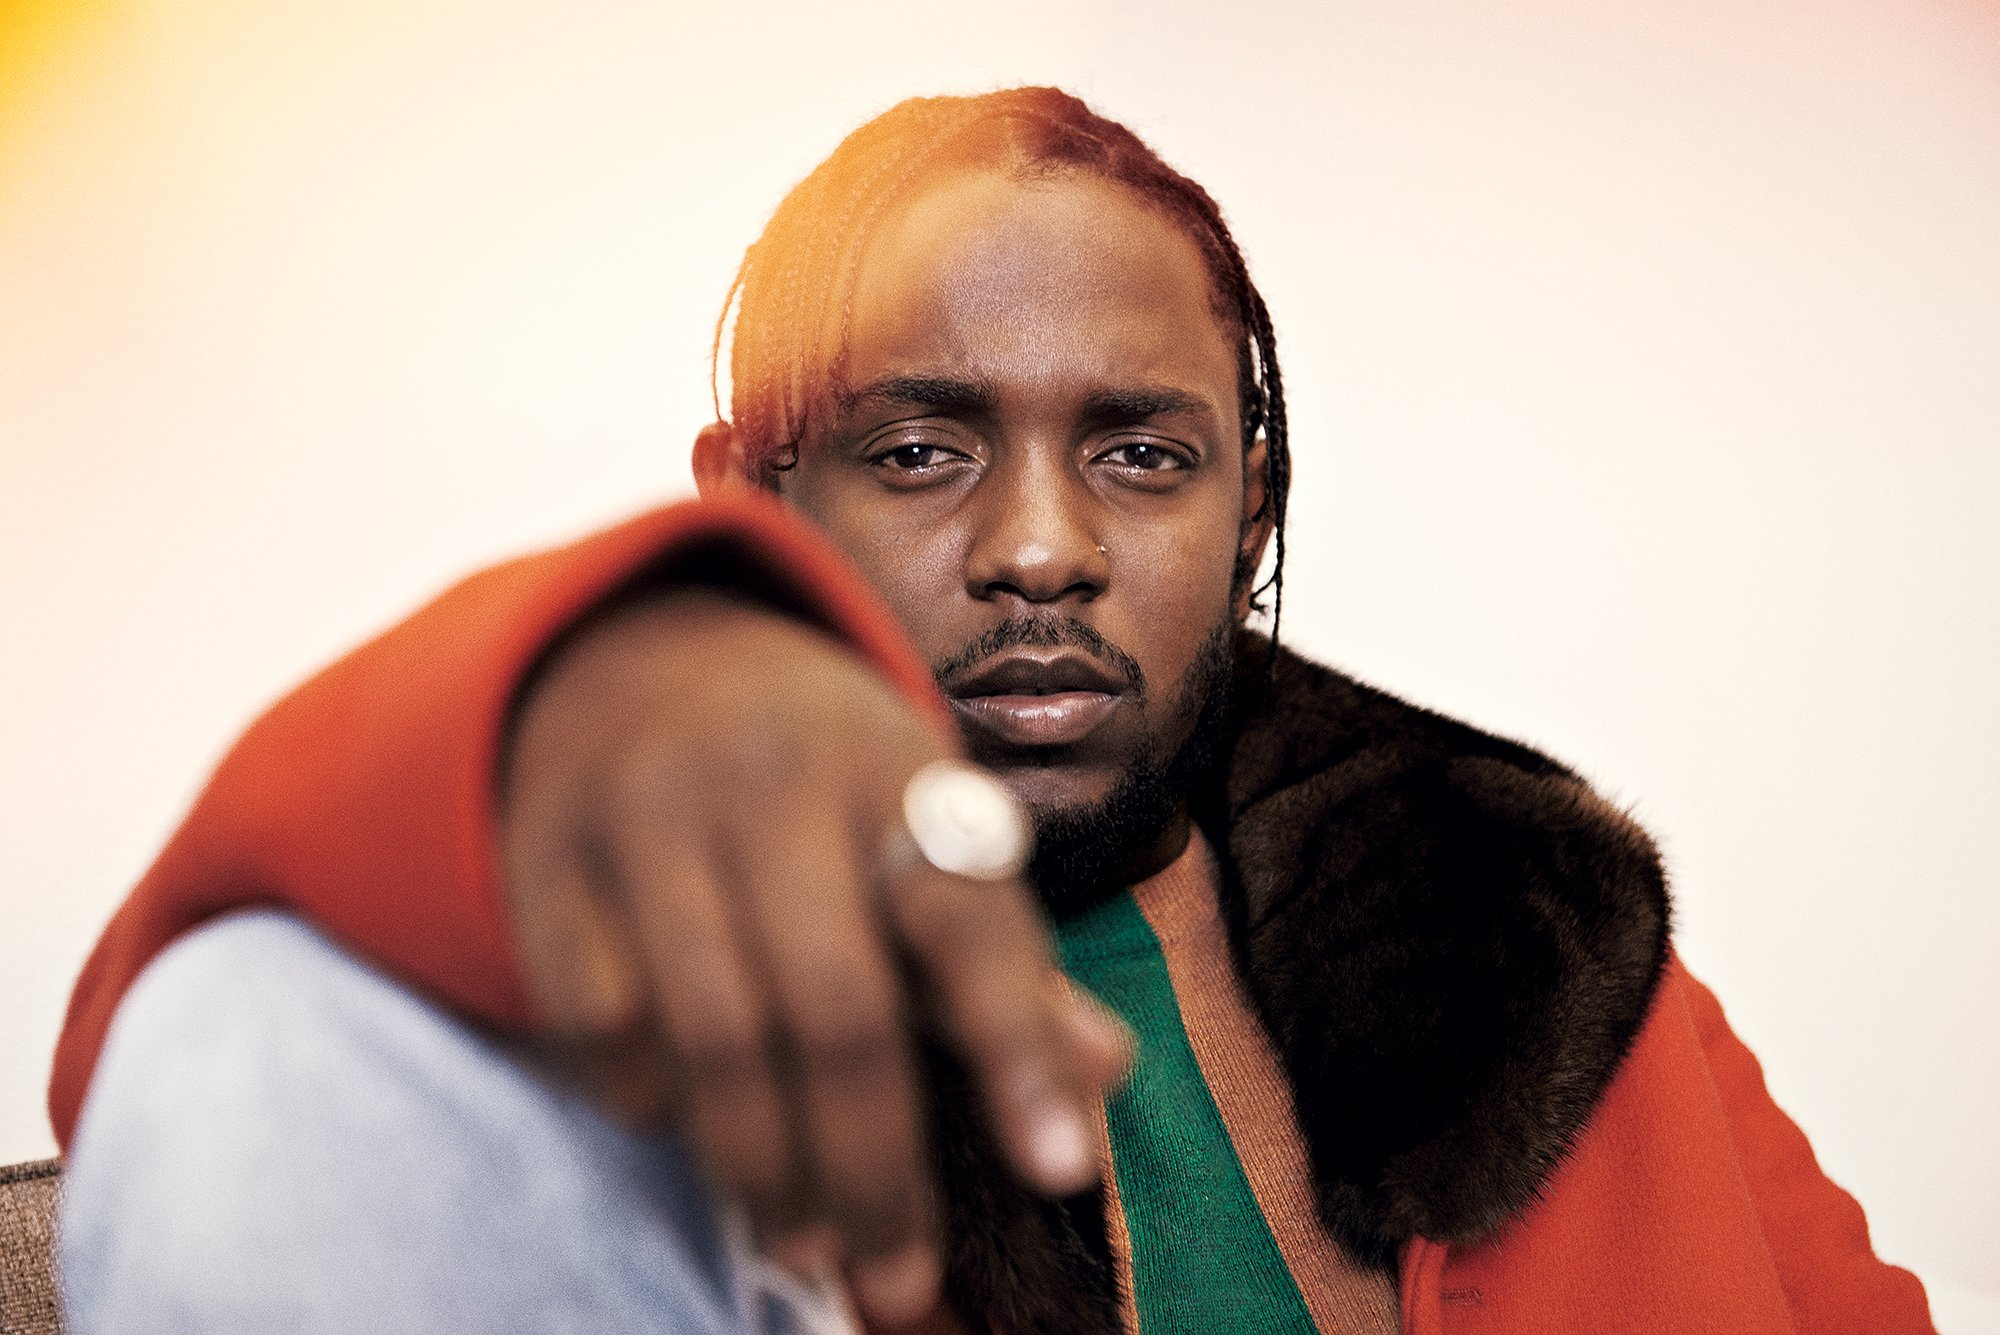 Humble genius: Rapper Kendrick Lamar. Photograph by Trunk Archive.